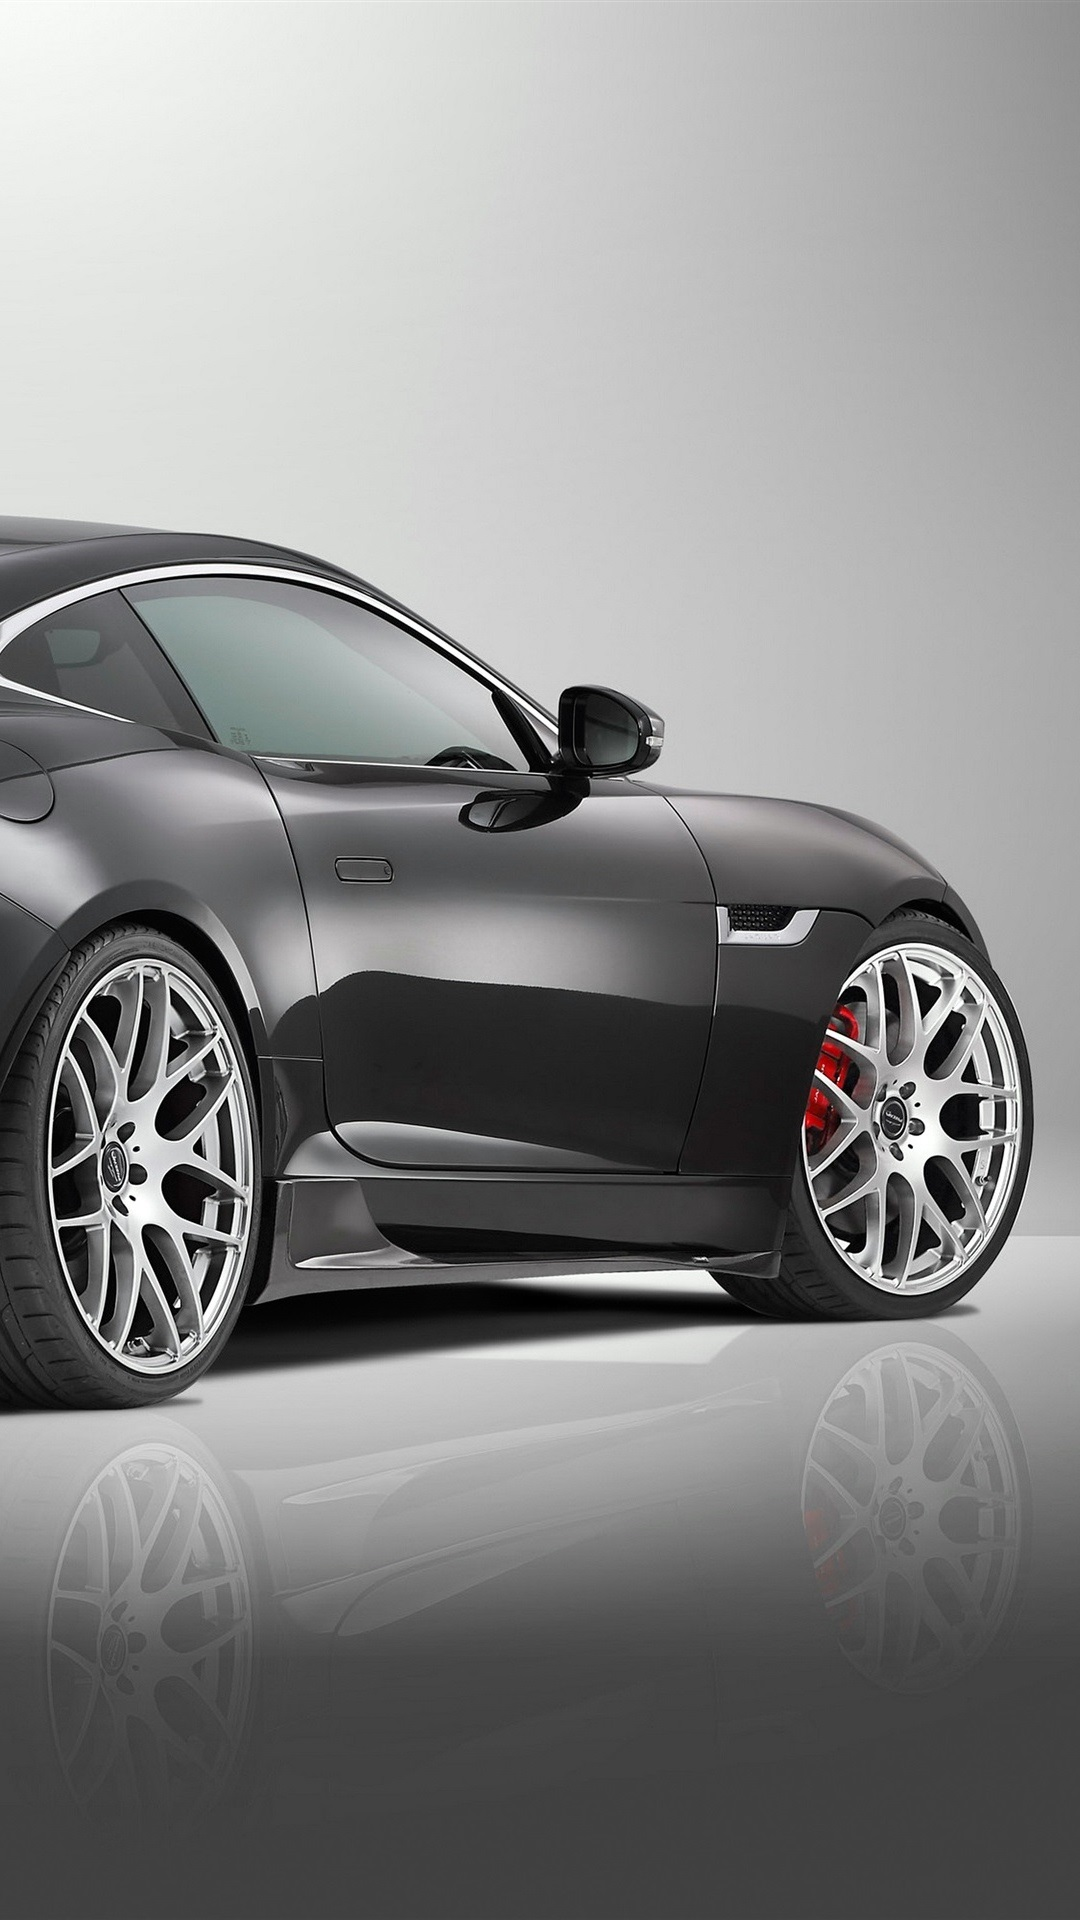 Wallpaper 2015 Jaguar F Type R Coupe Black Supercar Rear View